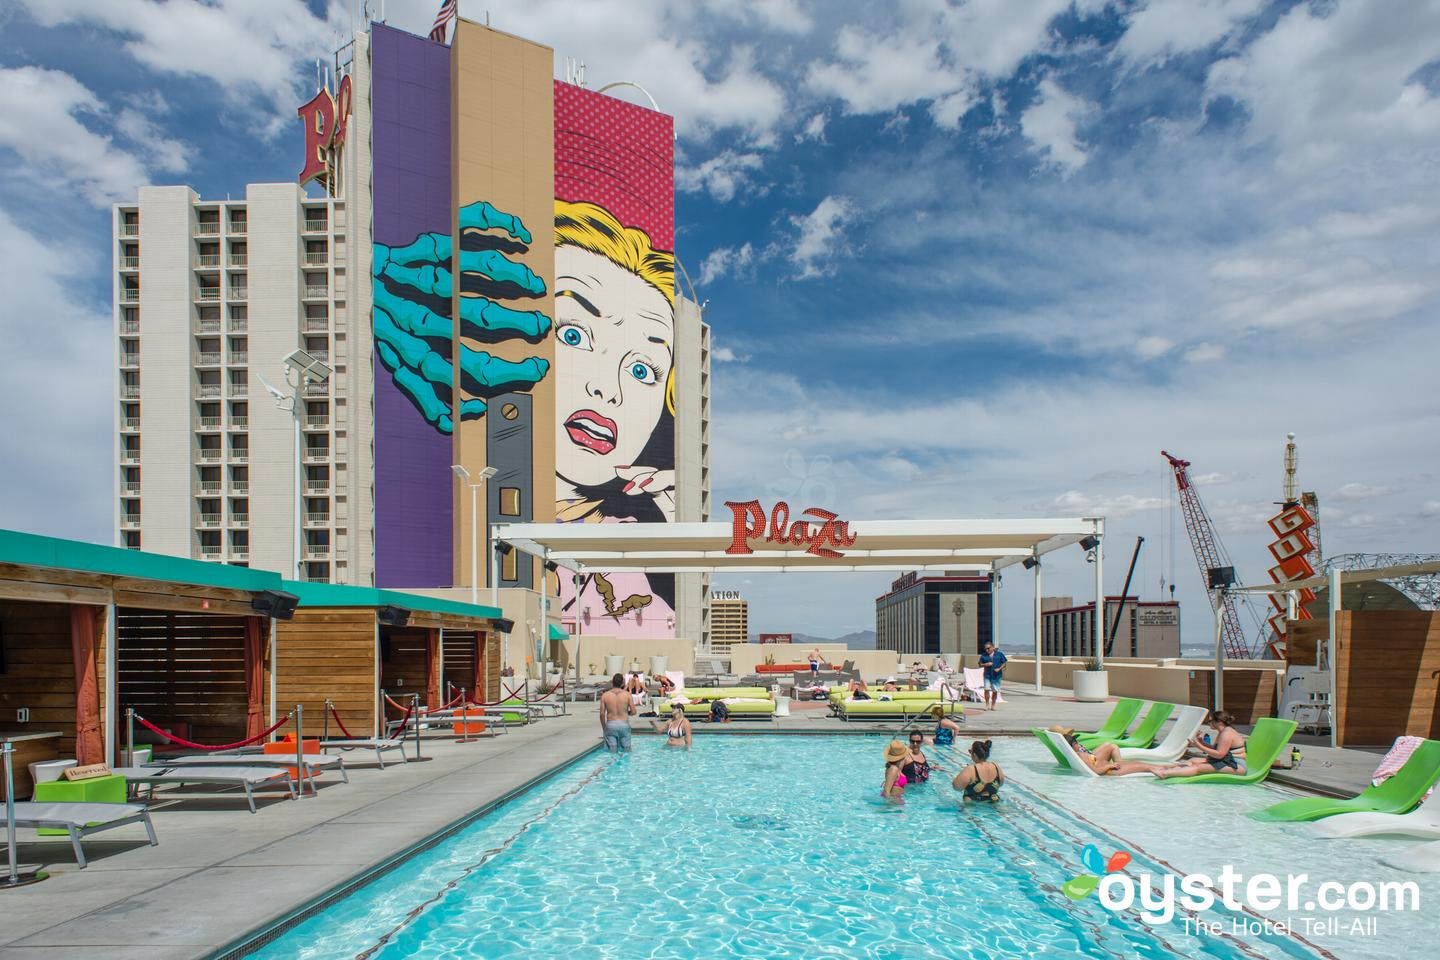 Plaza Hotel Casino Review What To Really Expect If You Stay